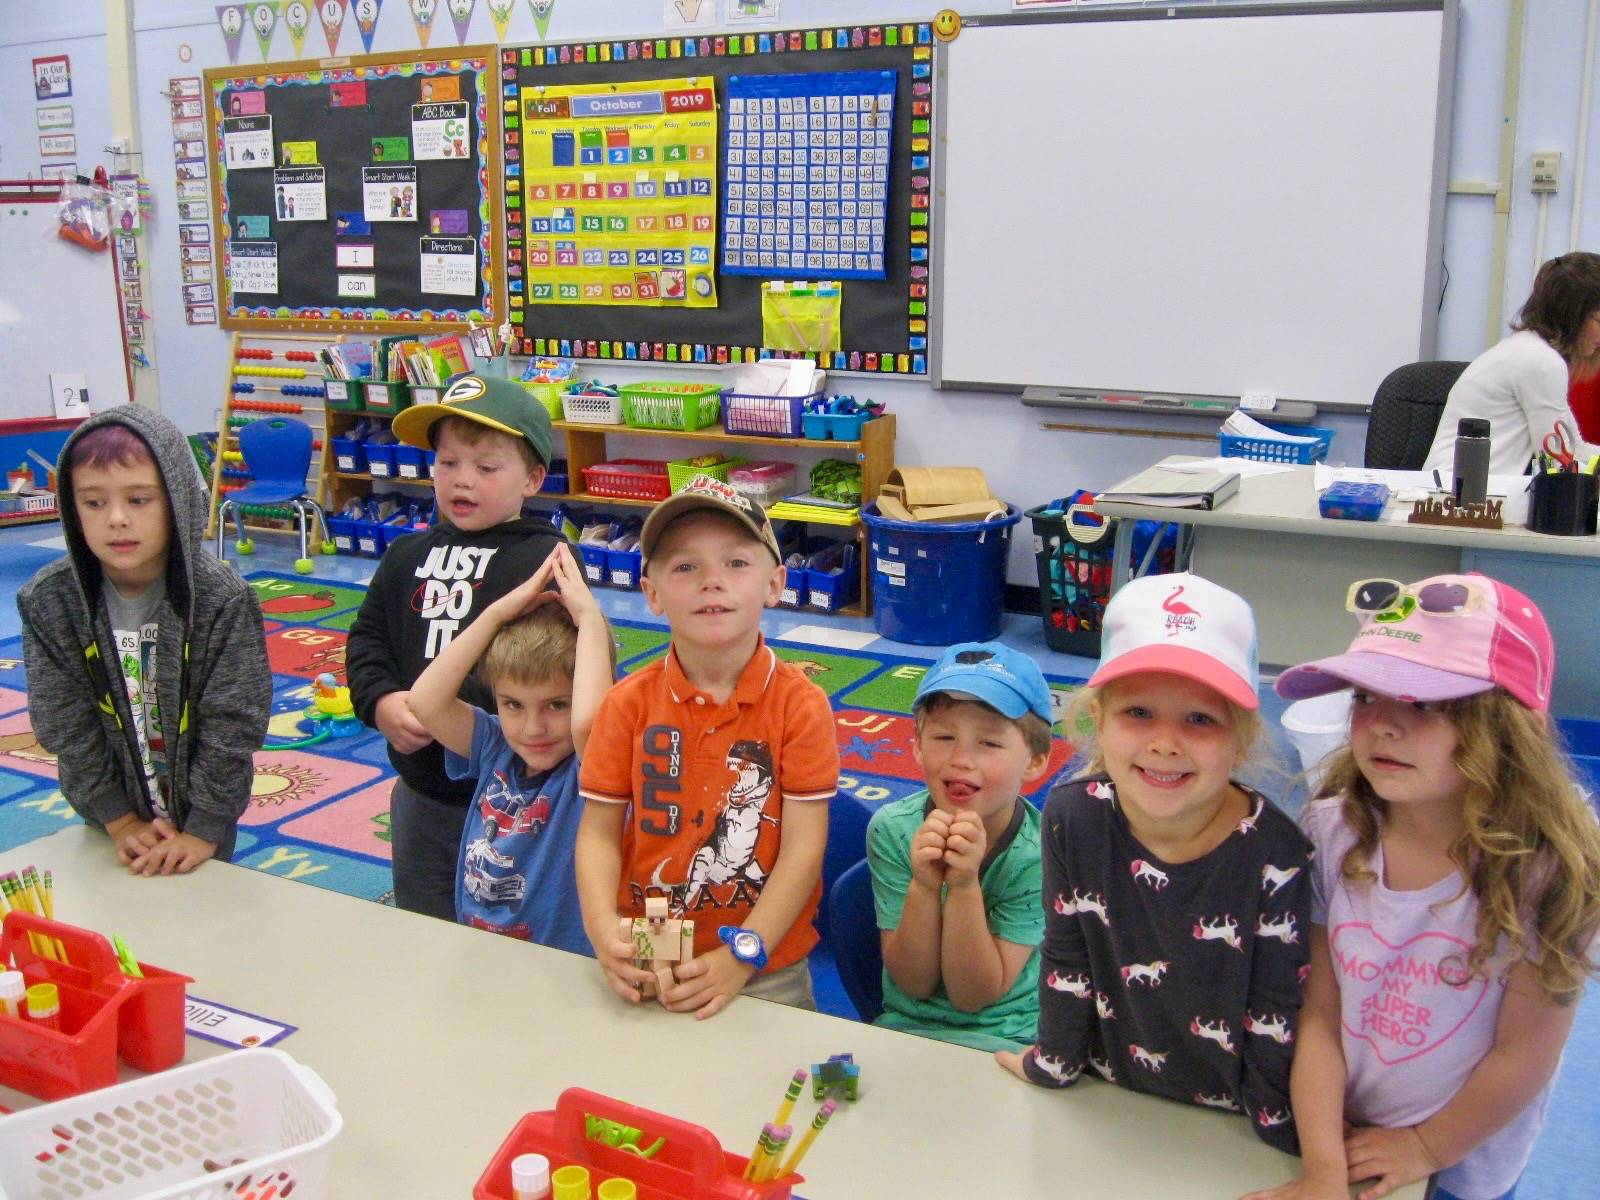 Several students with hats